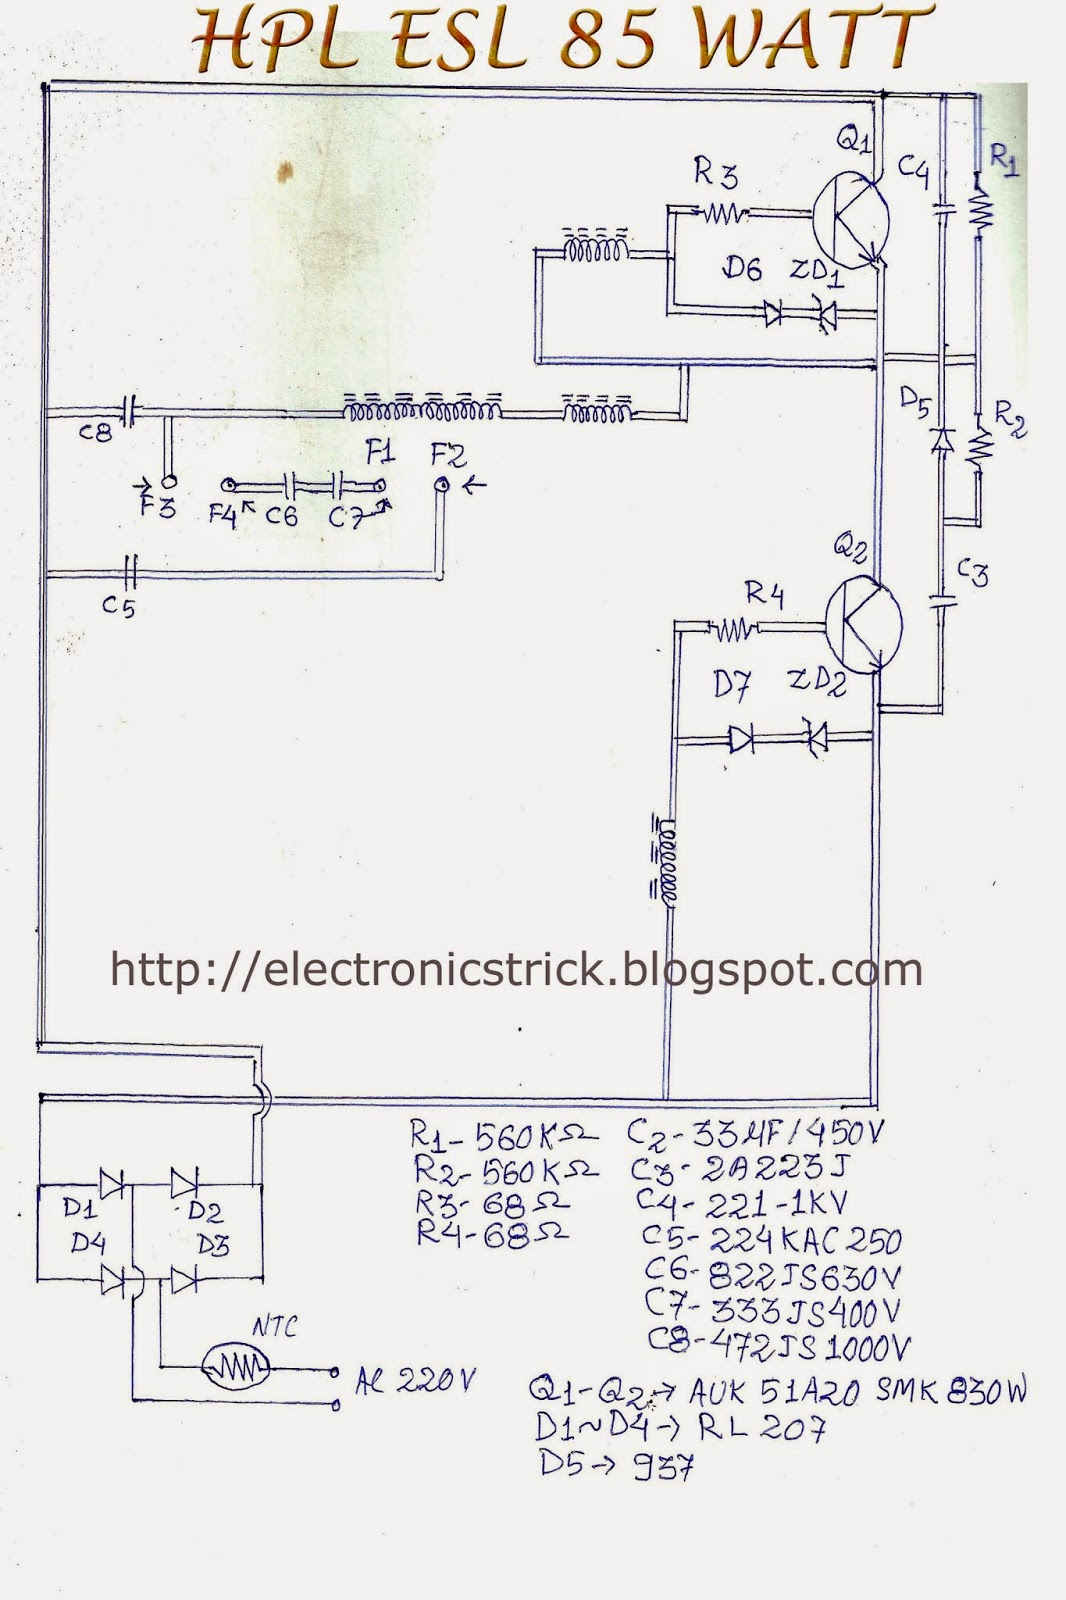 medium resolution of hcl esl 85 watt cfl bulb ckt diagram tips and trick electronic another cfl bulb circuit diagram with details